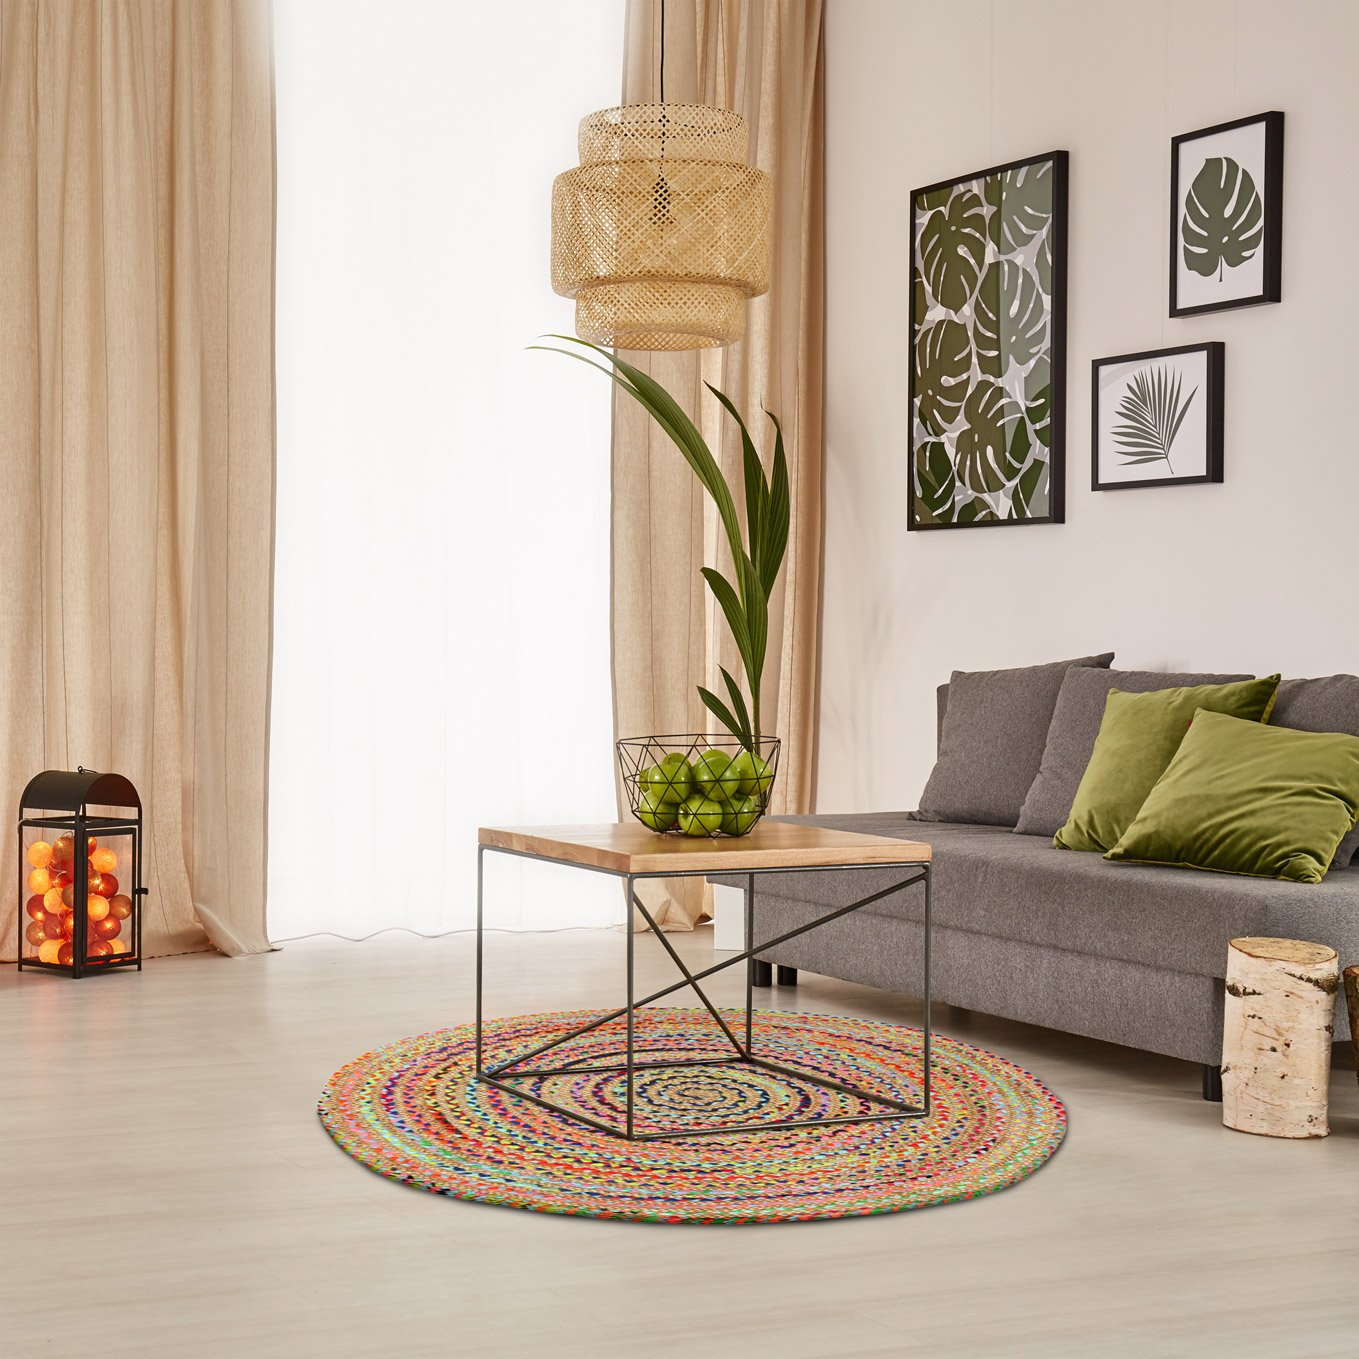 Green Decore Handmade Braided Round Natural Fiber Jute Rug (Fusion Multicolor, 8 feet Diameter)